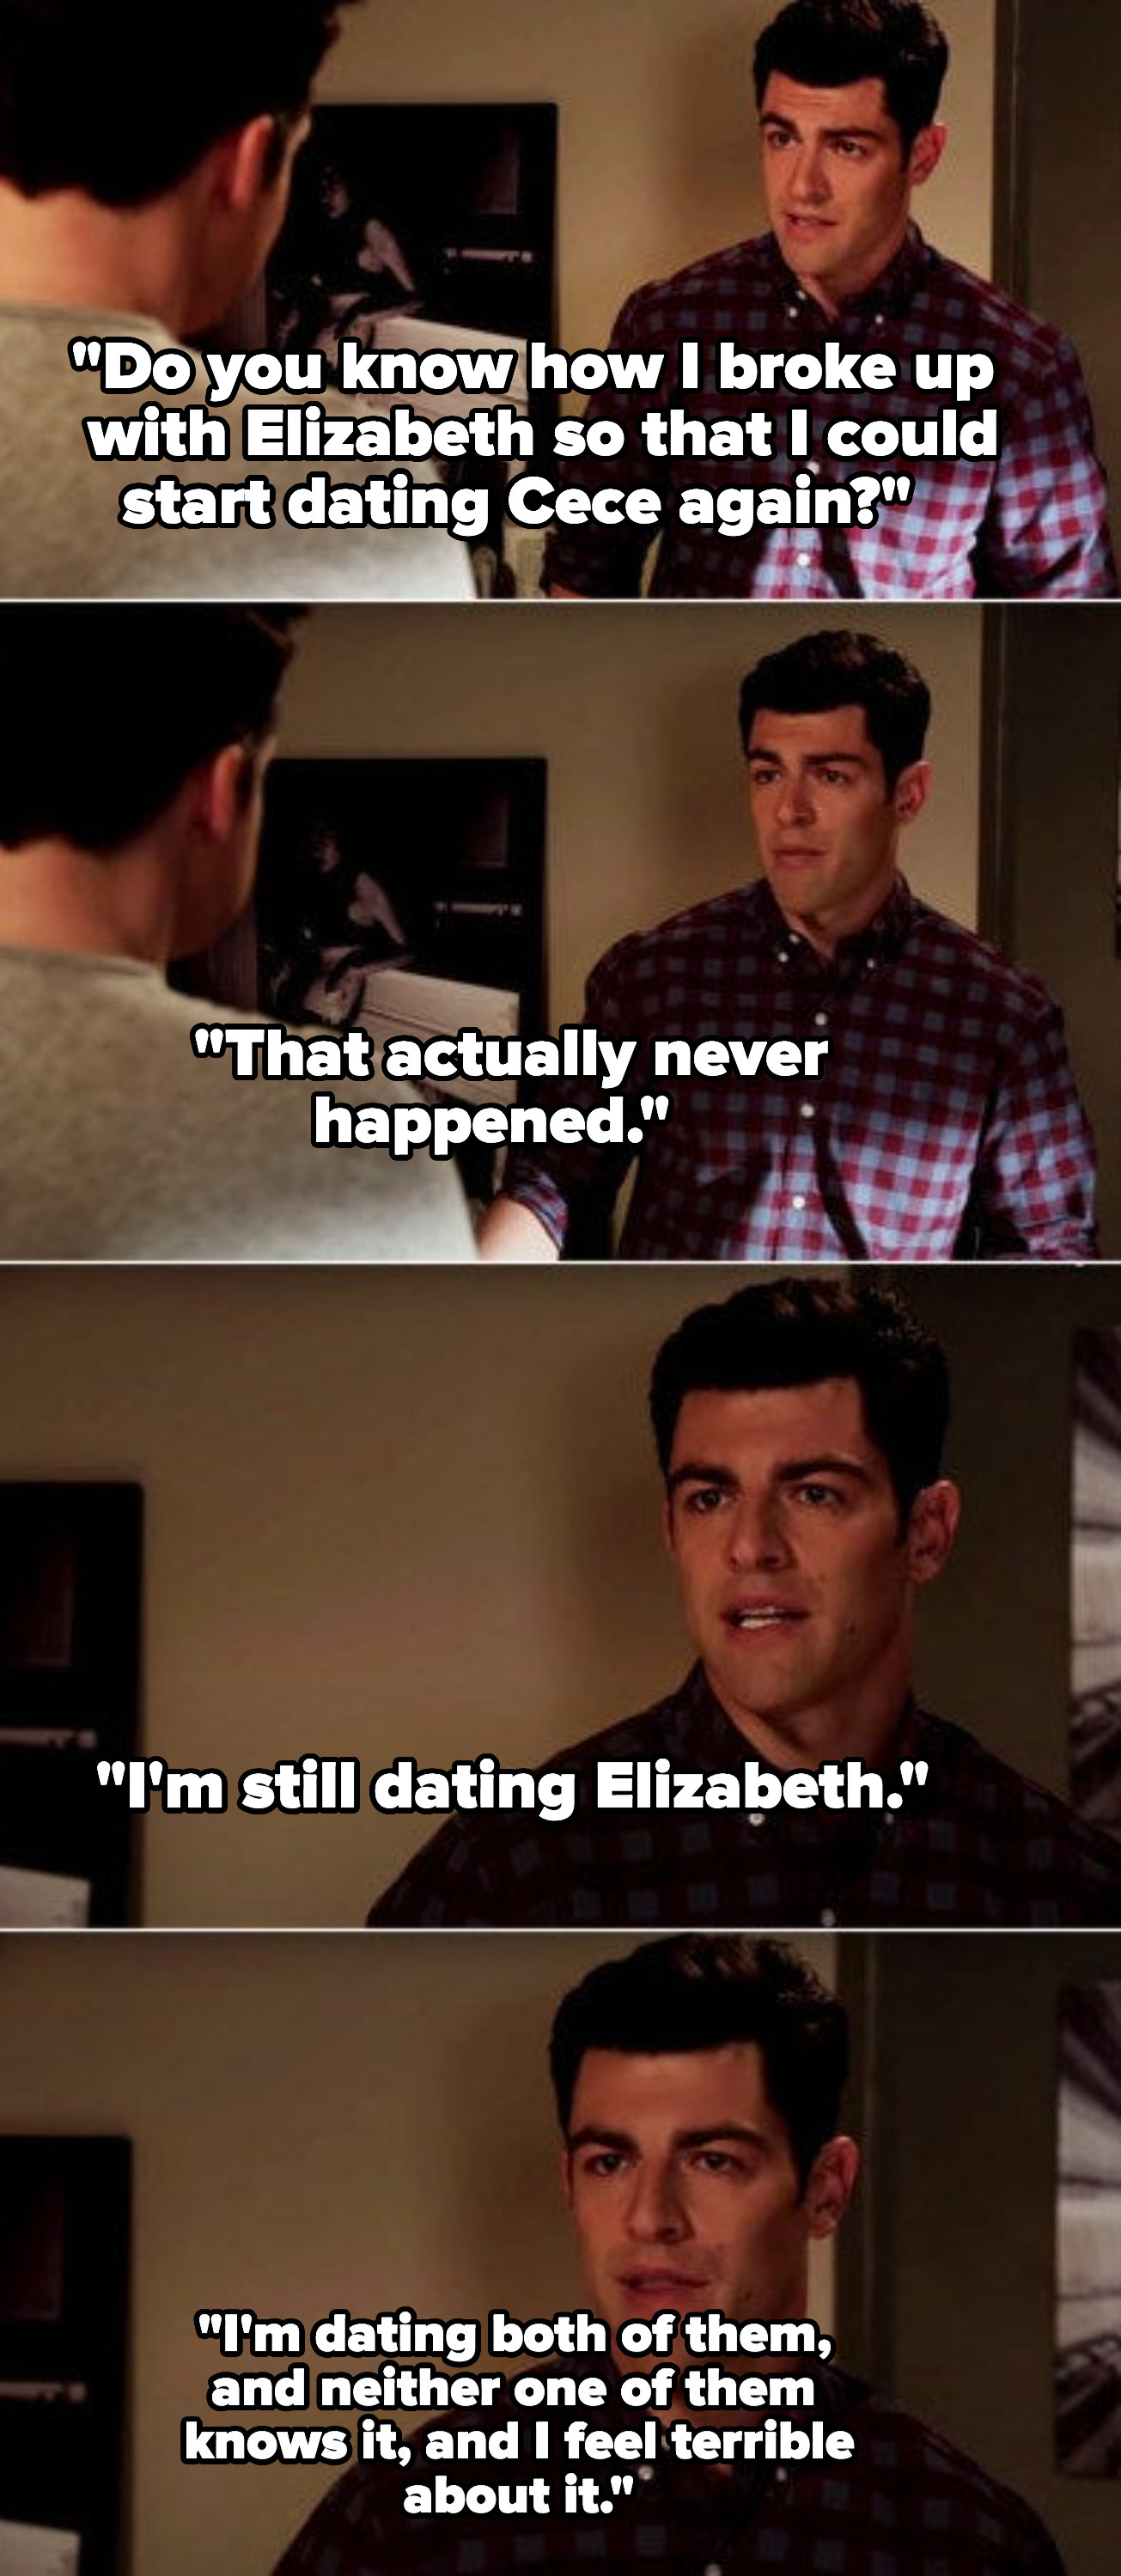 Schmidt talking about how he never broke up with Elizabeth to date Cece and how he feels terrible about it